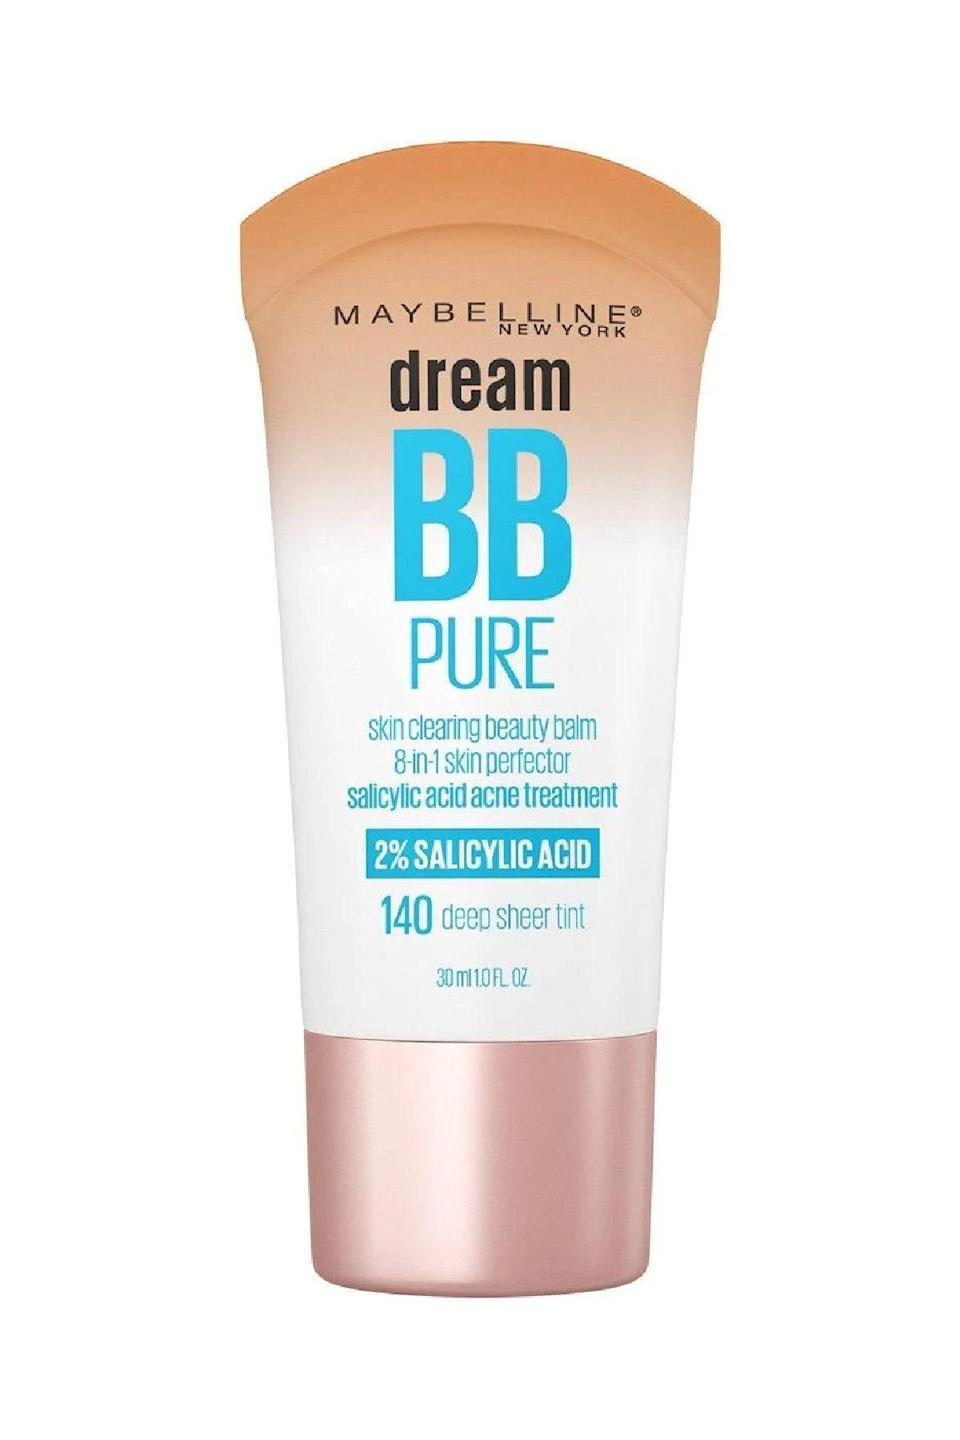 """<p><strong>Maybelline</strong></p><p>ulta.com</p><p><strong>$8.99</strong></p><p><a href=""""https://go.redirectingat.com?id=74968X1596630&url=https%3A%2F%2Fwww.ulta.com%2Fdream-pure-bb-cream-skin-clearing-perfector%3FproductId%3DxlsImpprod10721037&sref=https%3A%2F%2Fwww.marieclaire.com%2Fbeauty%2Fmakeup%2Fg3427%2Fbest-bb-creams%2F"""" rel=""""nofollow noopener"""" target=""""_blank"""" data-ylk=""""slk:SHOP IT"""" class=""""link rapid-noclick-resp"""">SHOP IT</a></p><p>Maybelline's best-selling BB cream includes the welcome addition of salicylic acid, a gentle exfoliant that works to loosen up dead skin cells that can cause blackheads. </p>"""